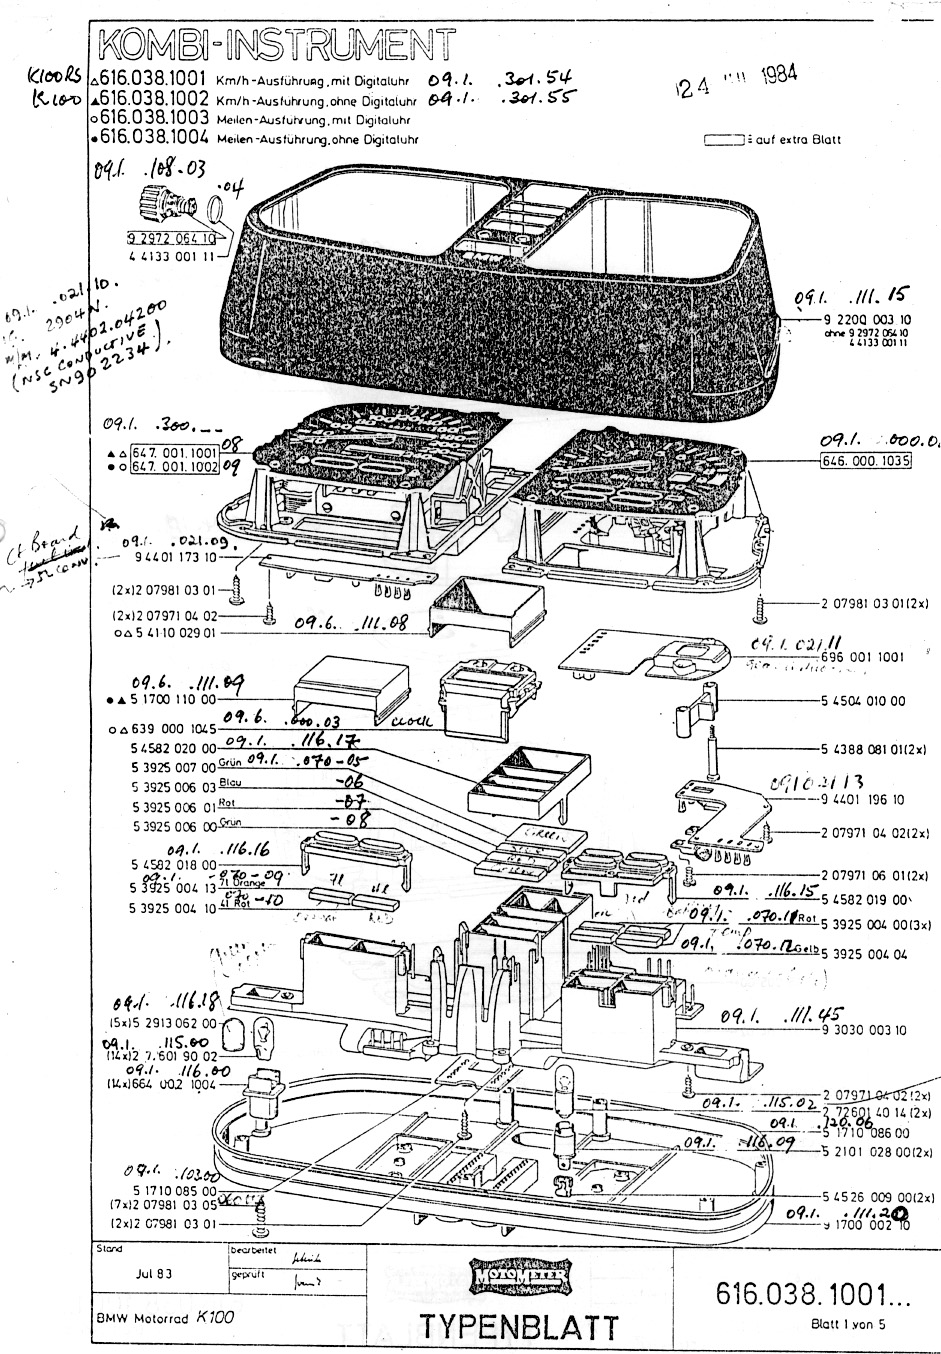 1985 bmw k100 wiring diagram 1985 honda goldwing wiring